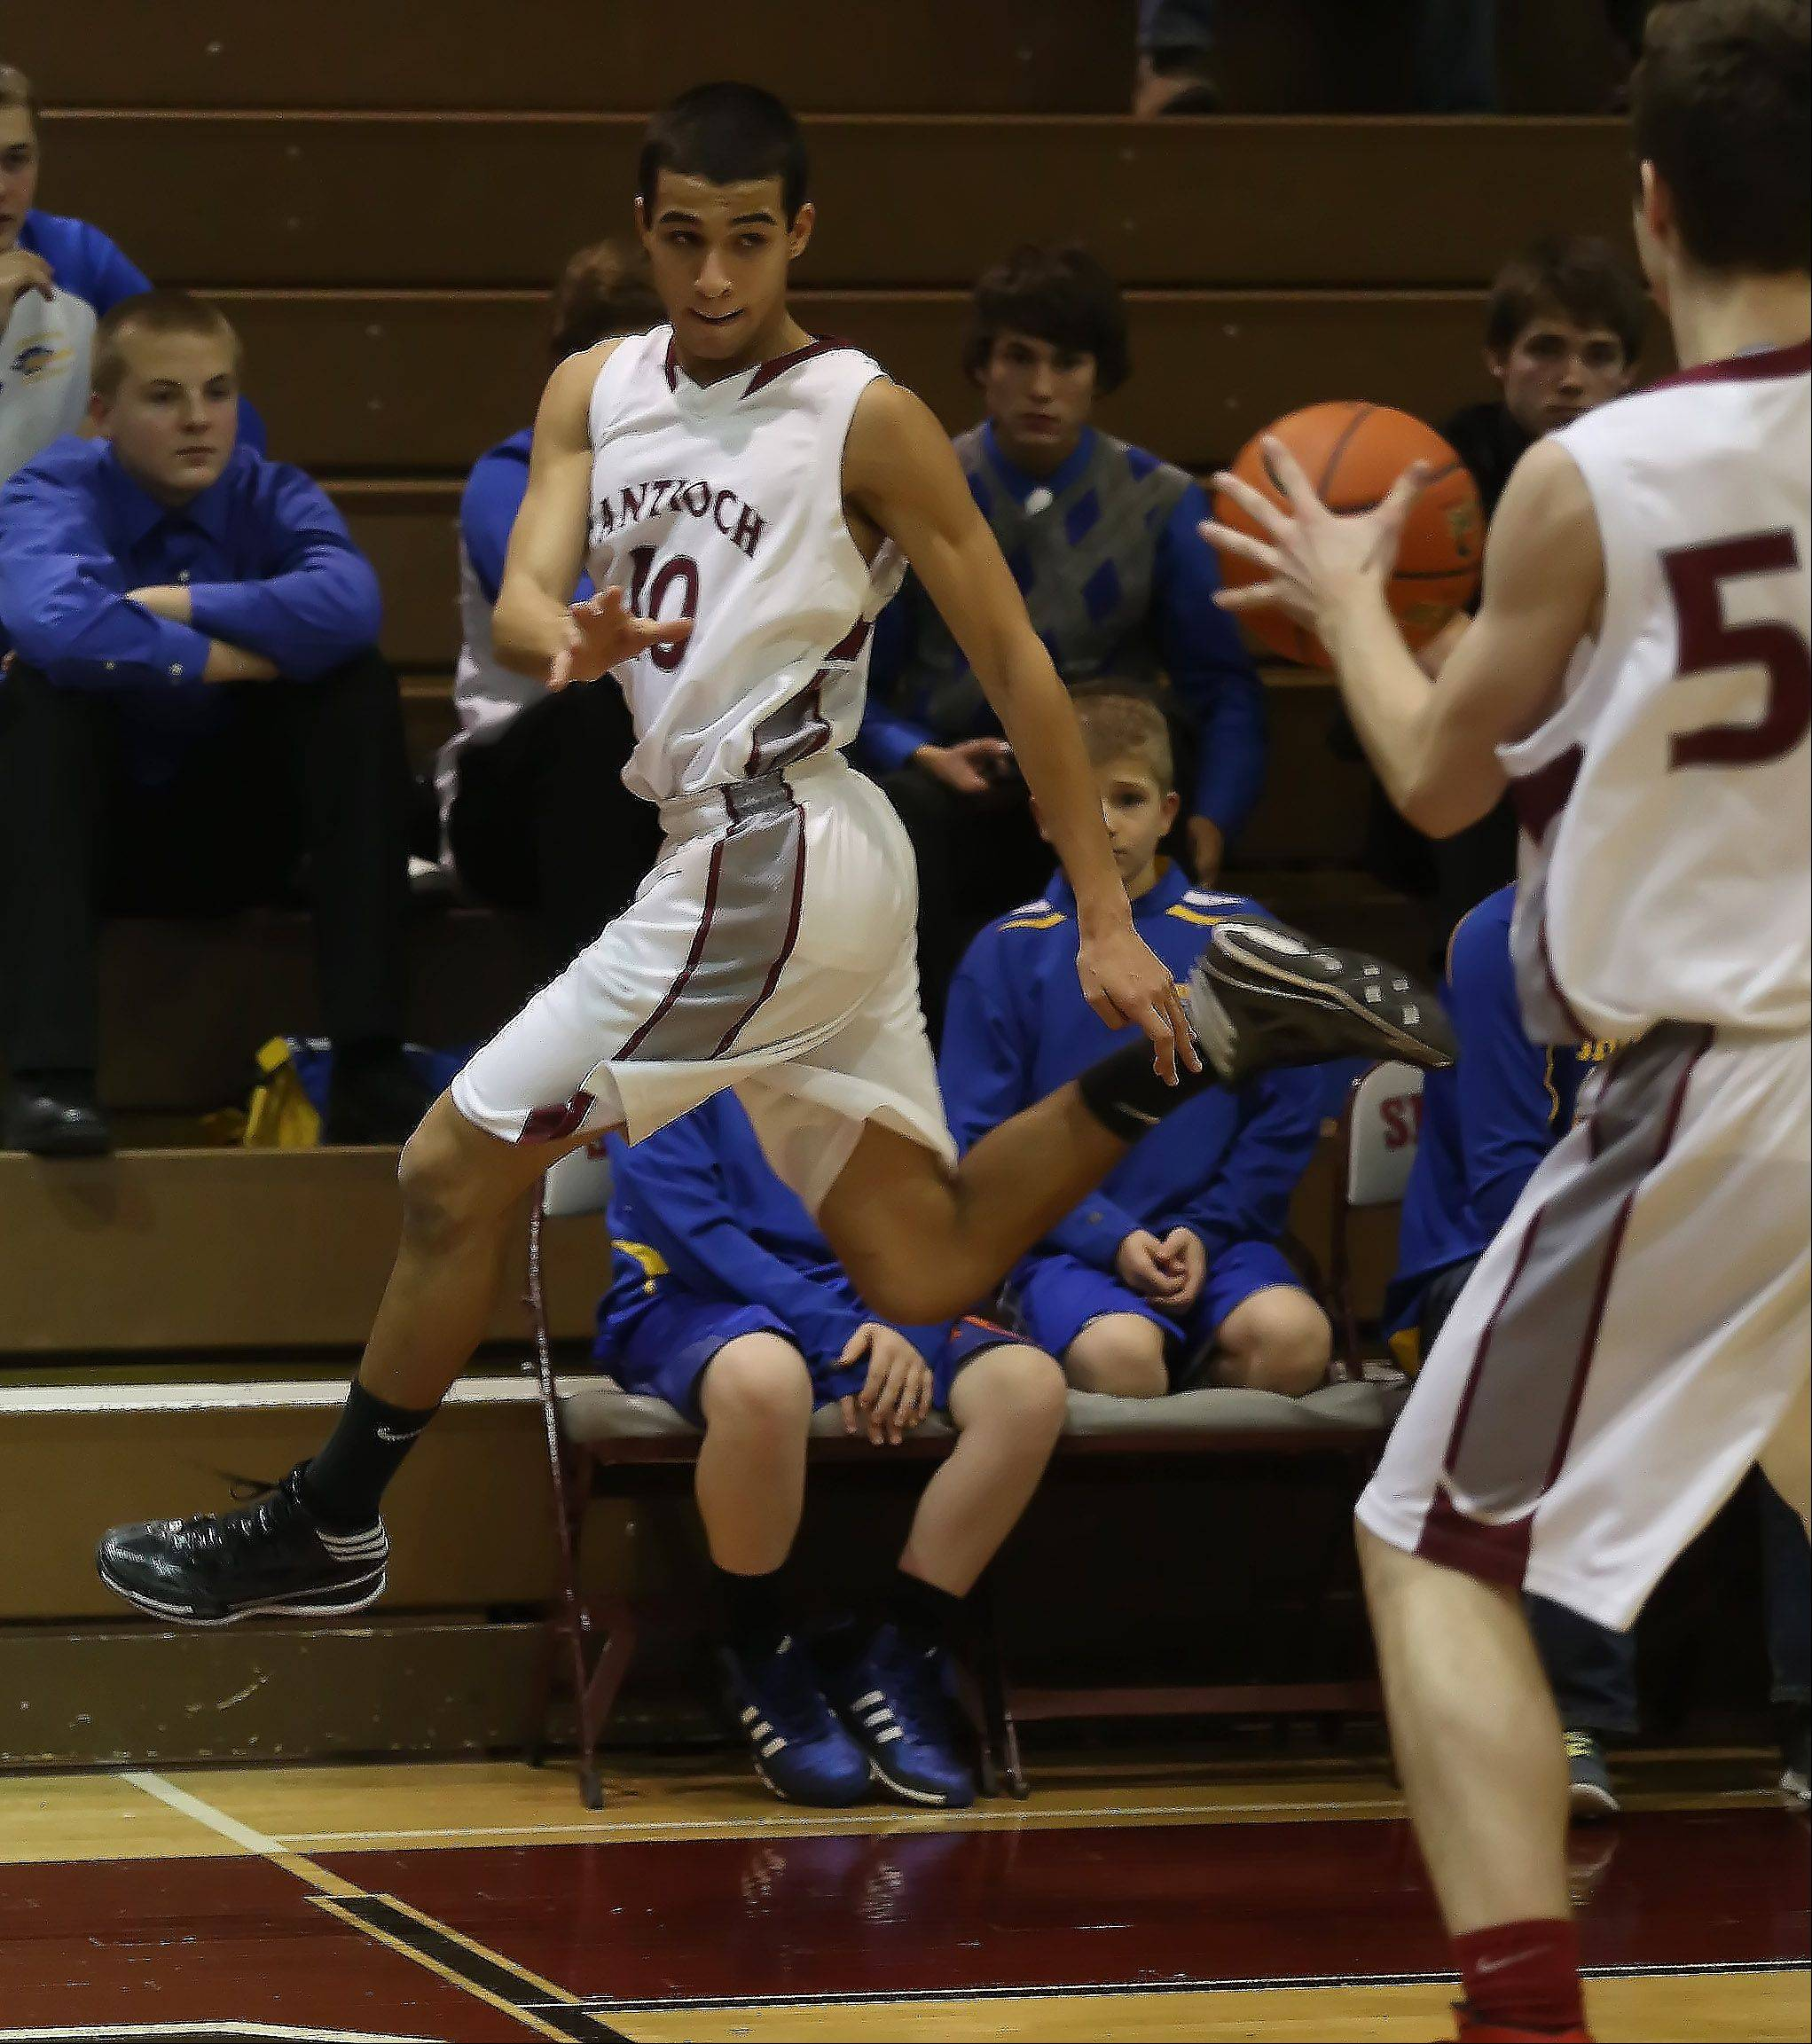 Antioch guard Hamza Abdellatif throws the back inbounds to Antioch forward Matthew Powers.